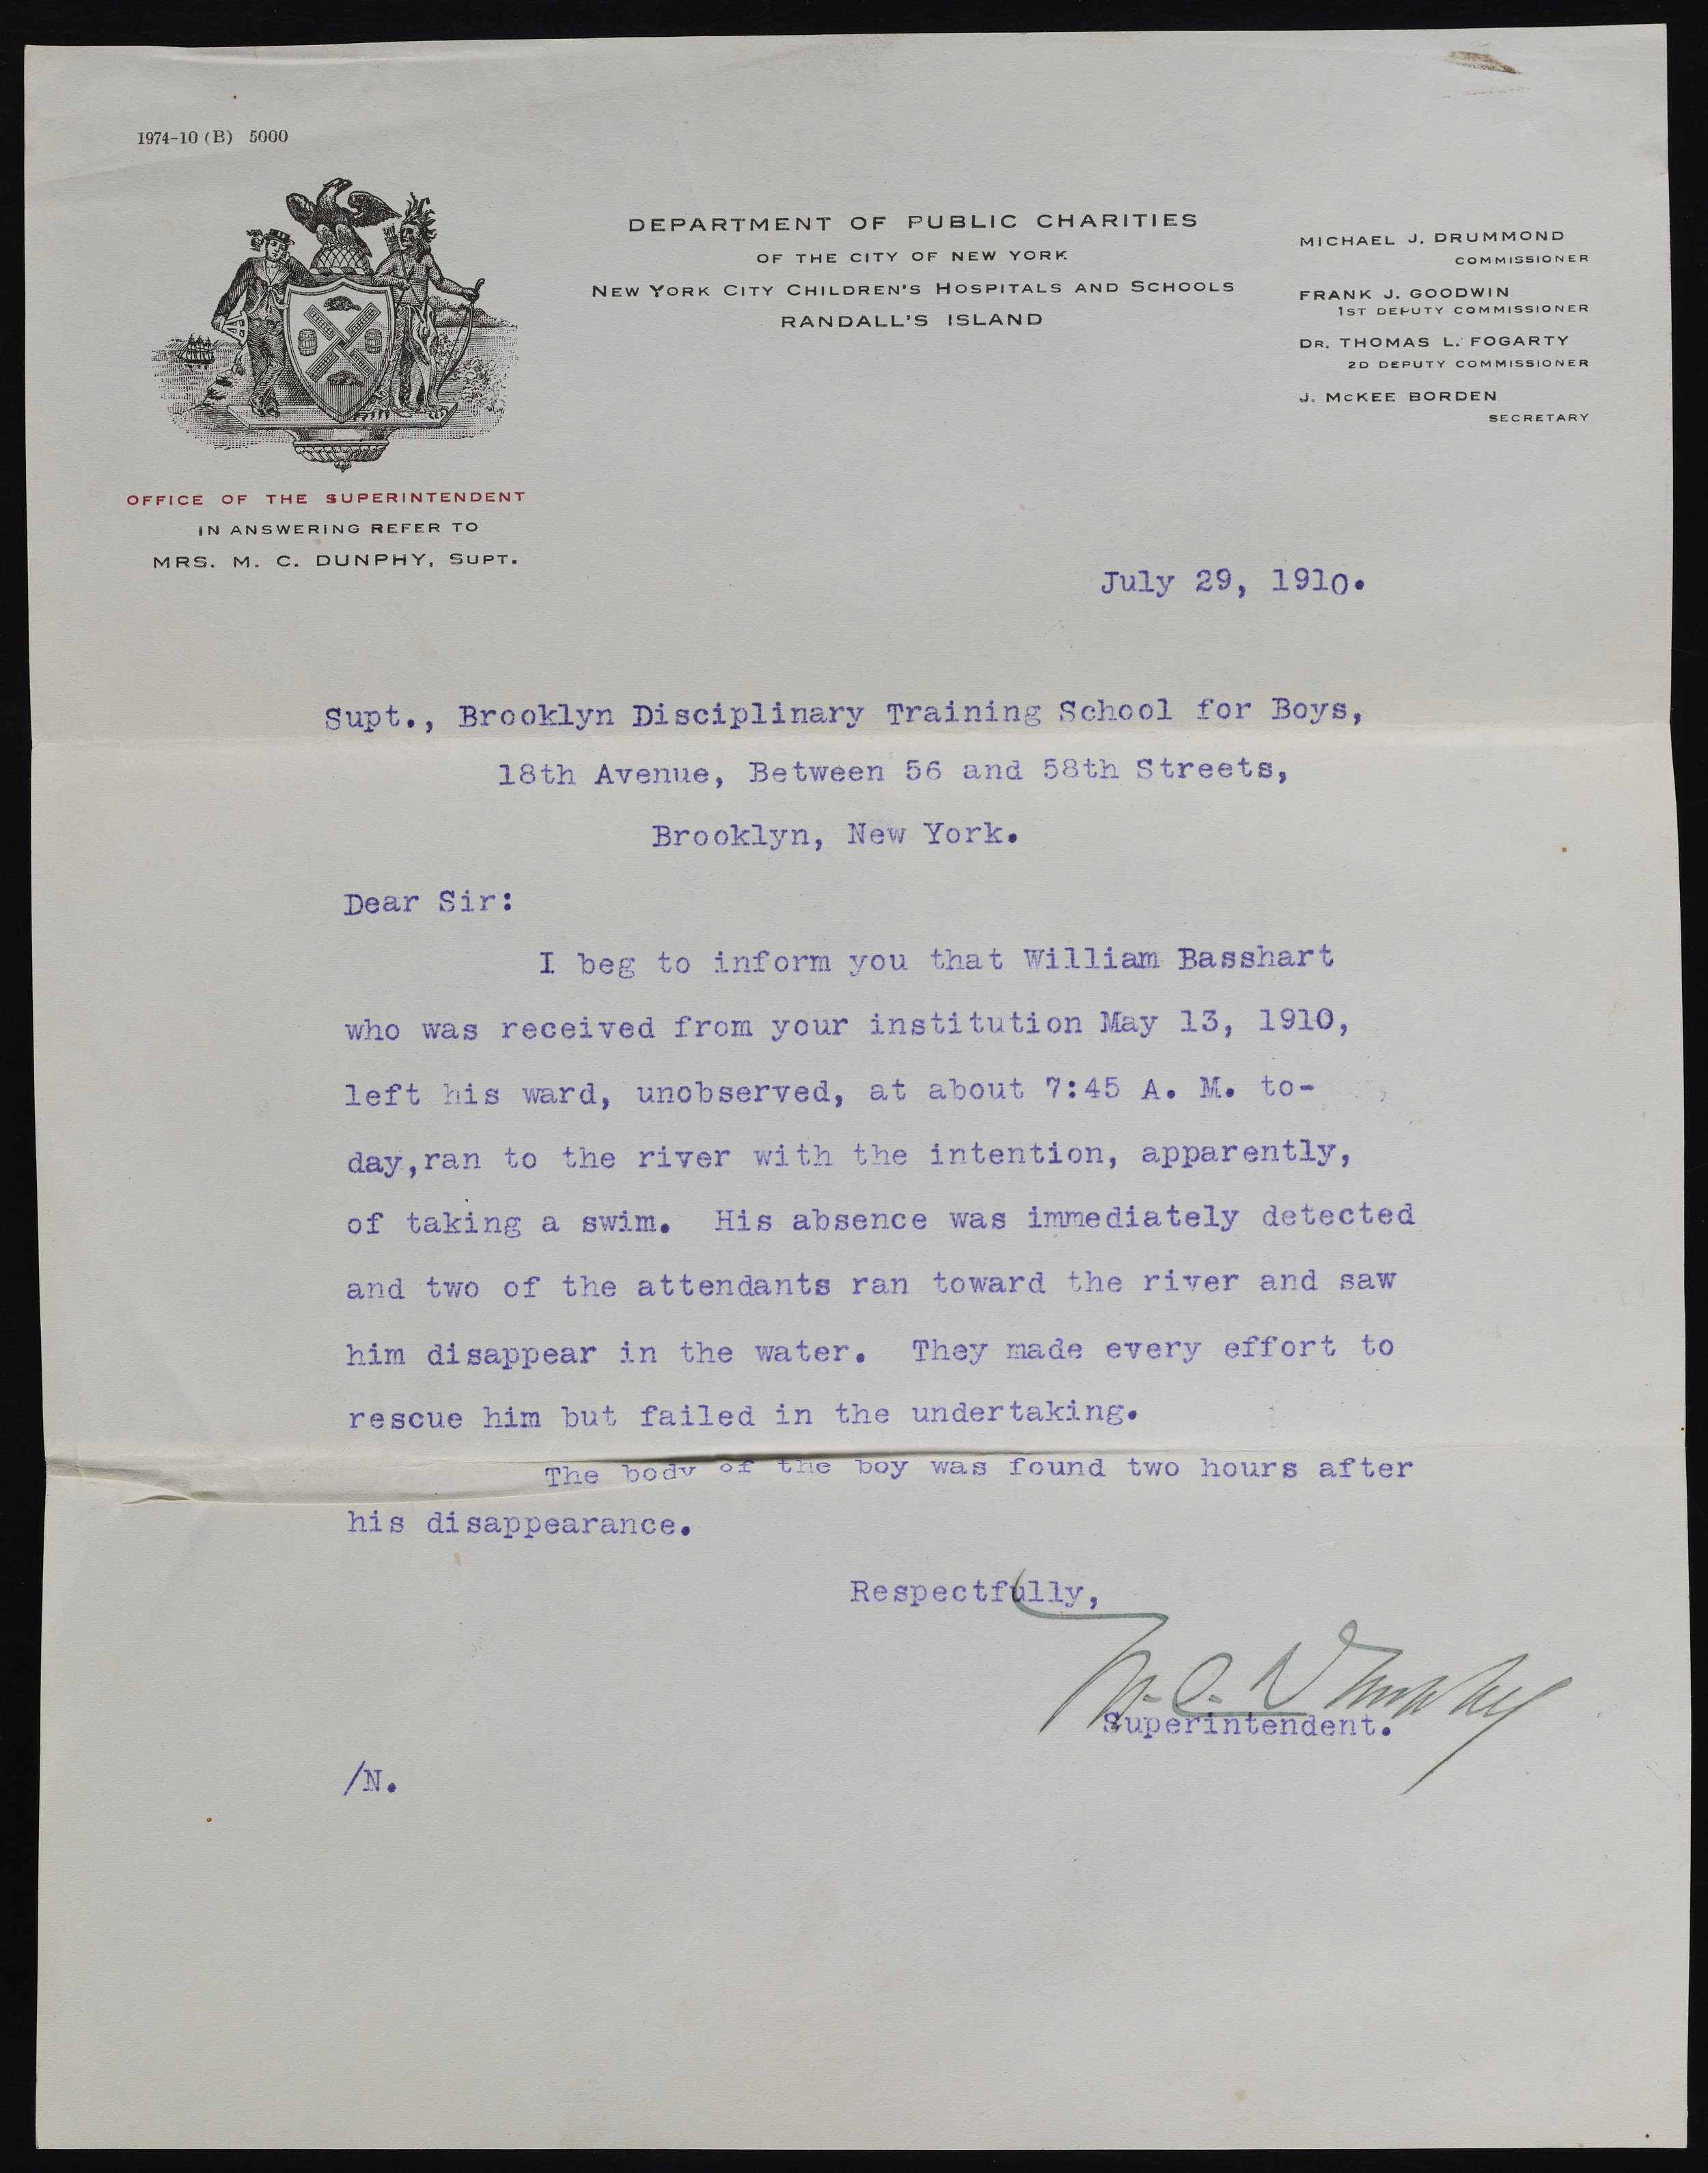 Letter concerning a former inmate who drowned trying to escape from Randall's Island, 1910. Records of the Brooklyn Disciplinary Training School for Boys, NYC Municipal Archives.